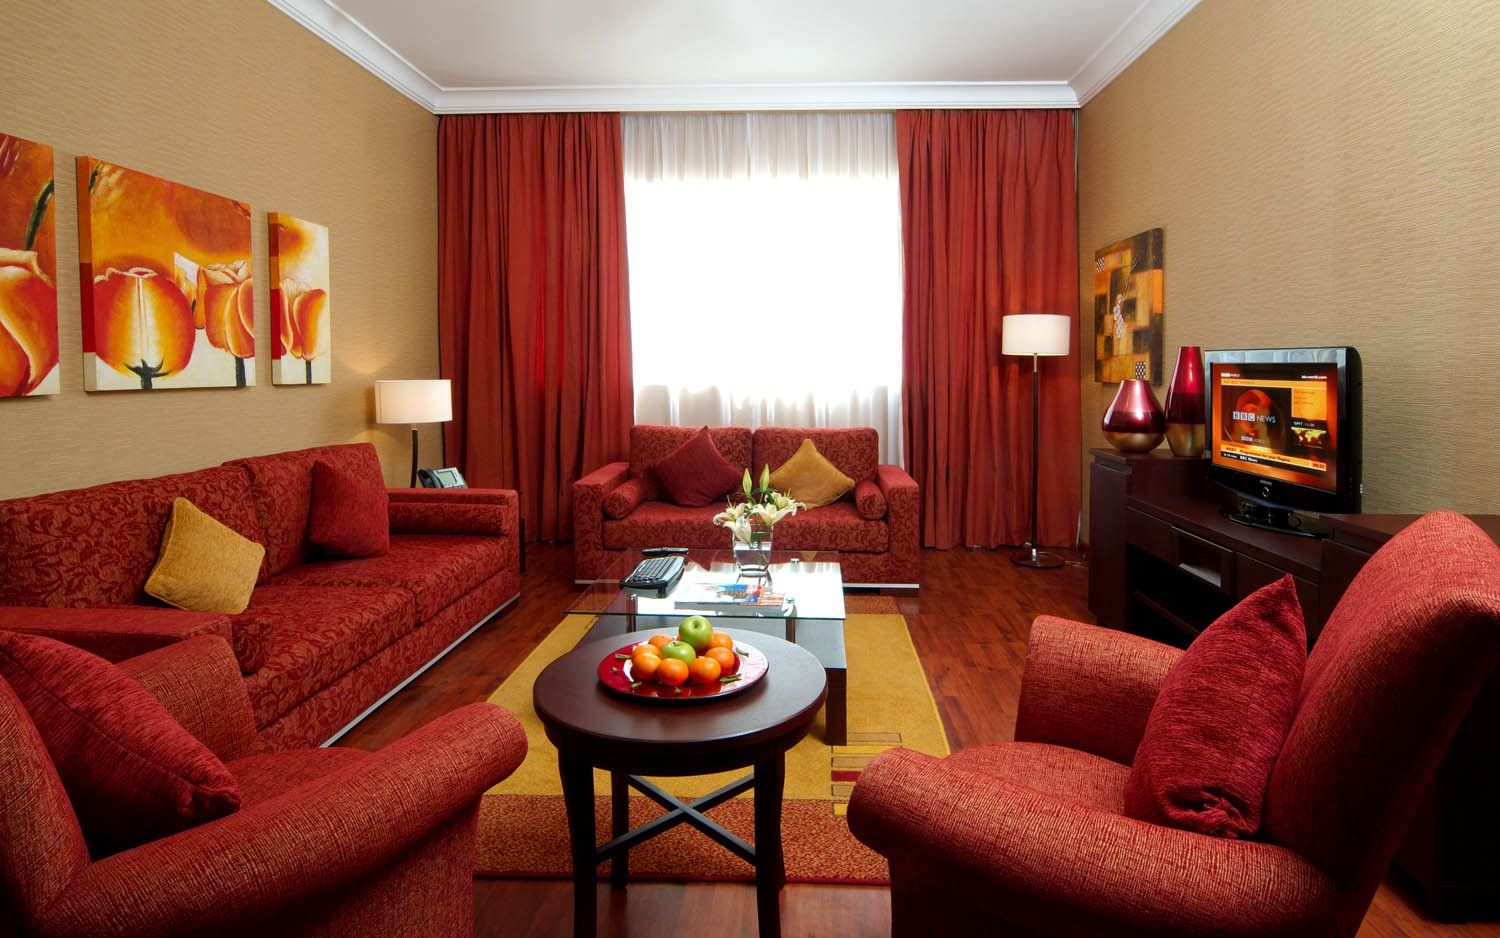 Great Arabic Living Room With Red Sofa And Yellow Walls